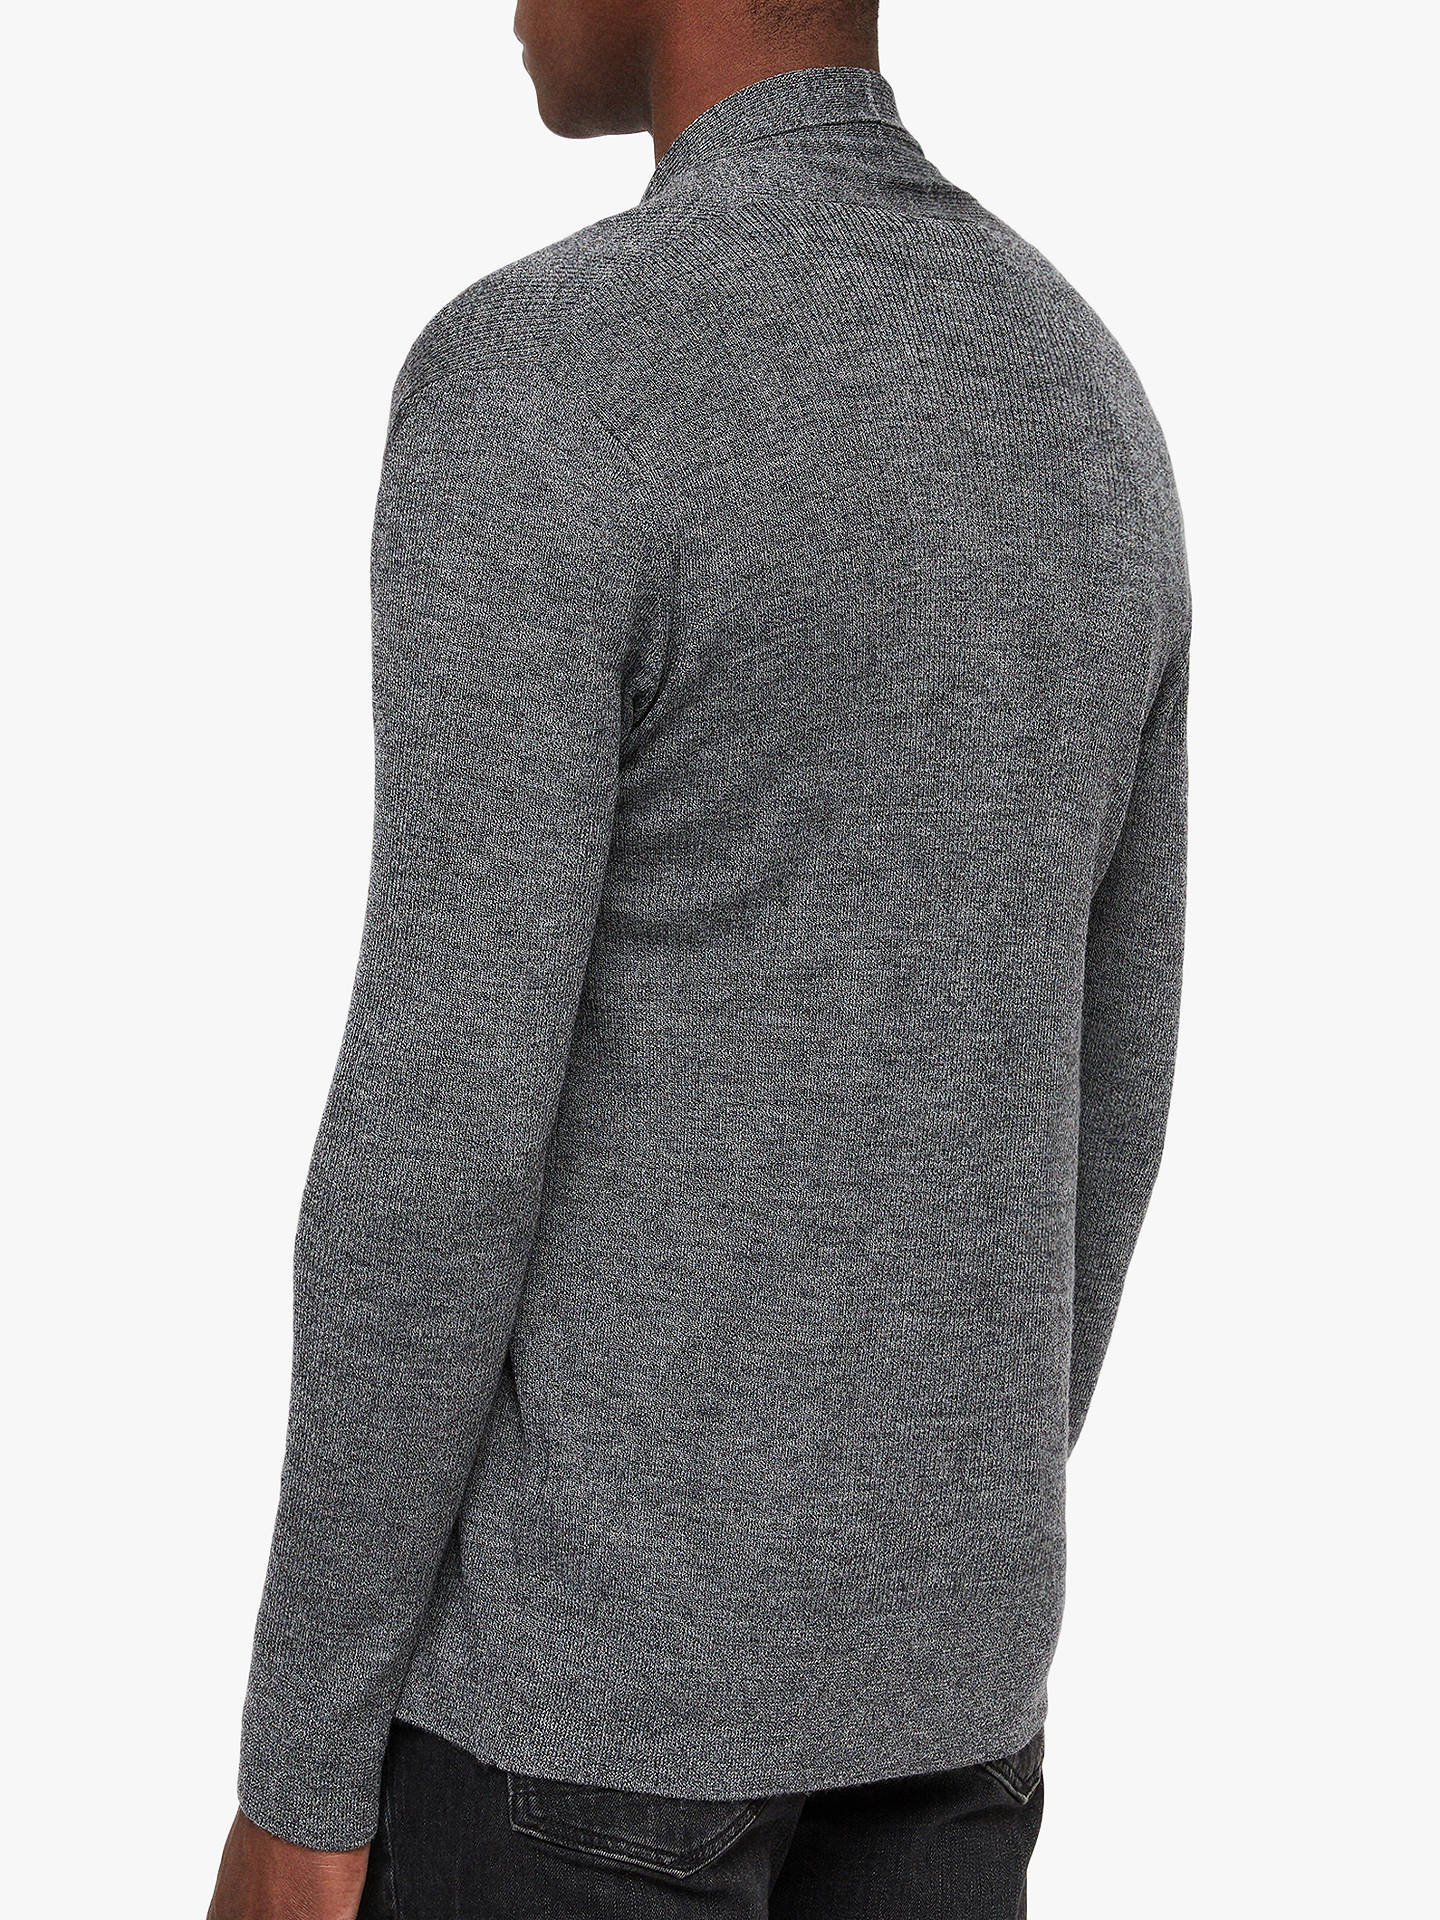 BuyAllSaints Mode Merino Cardigan, Charcoal Mouline, XS Online at johnlewis.com